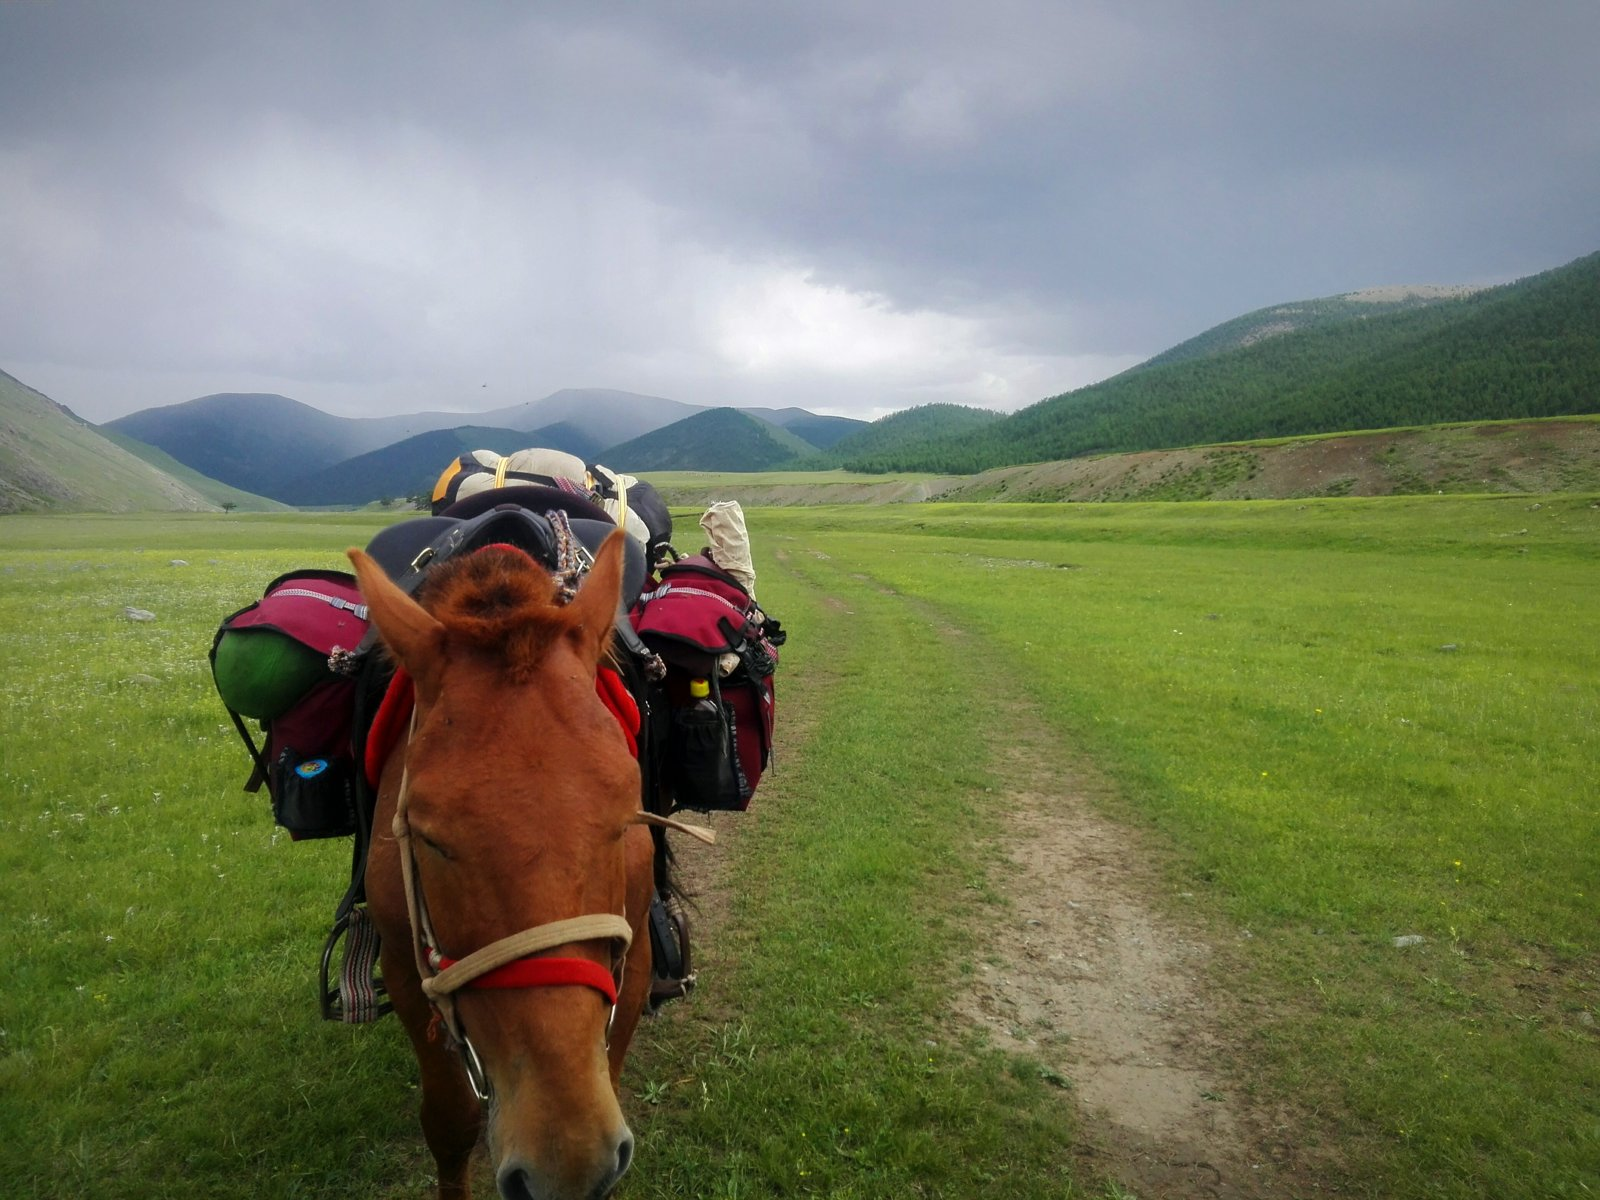 img_20160710_213325-jpg.31995_Polvo the Mongolian Horse_Furry Nomads_Squat the Planet_3:00 AM